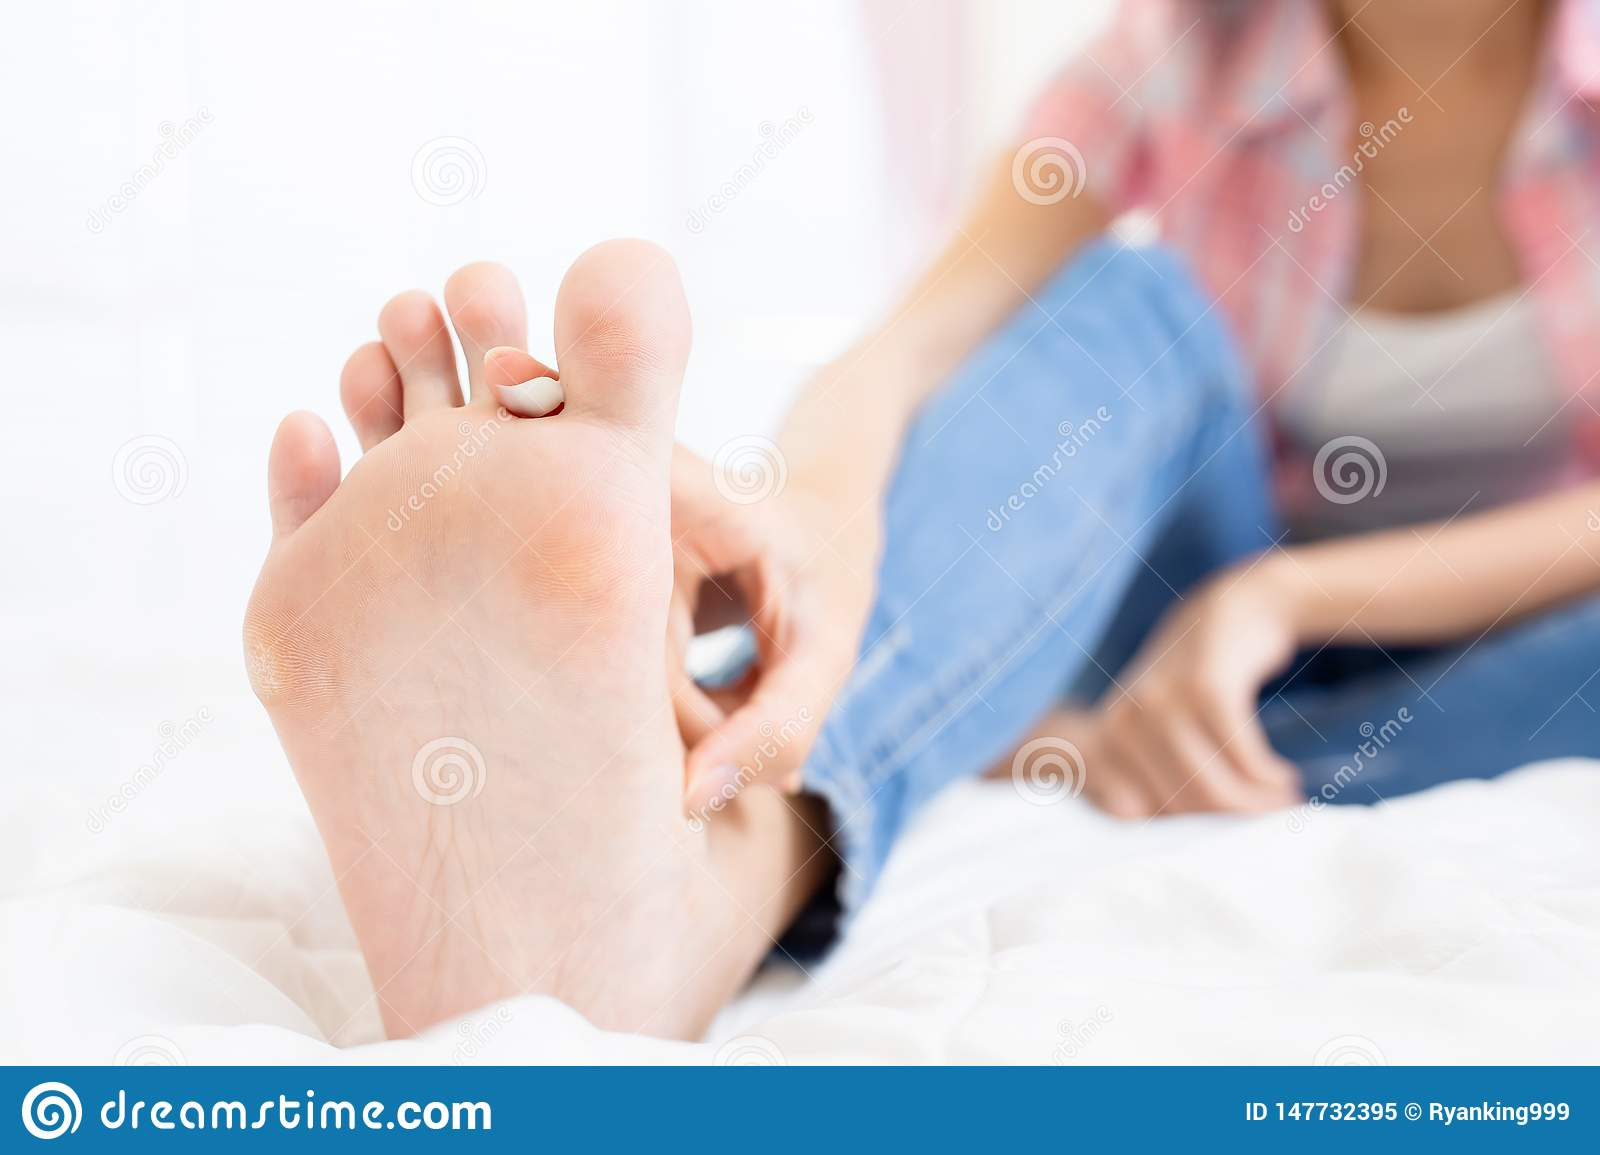 Applying Cream For Athletes Foot Stock Image - Image of ...